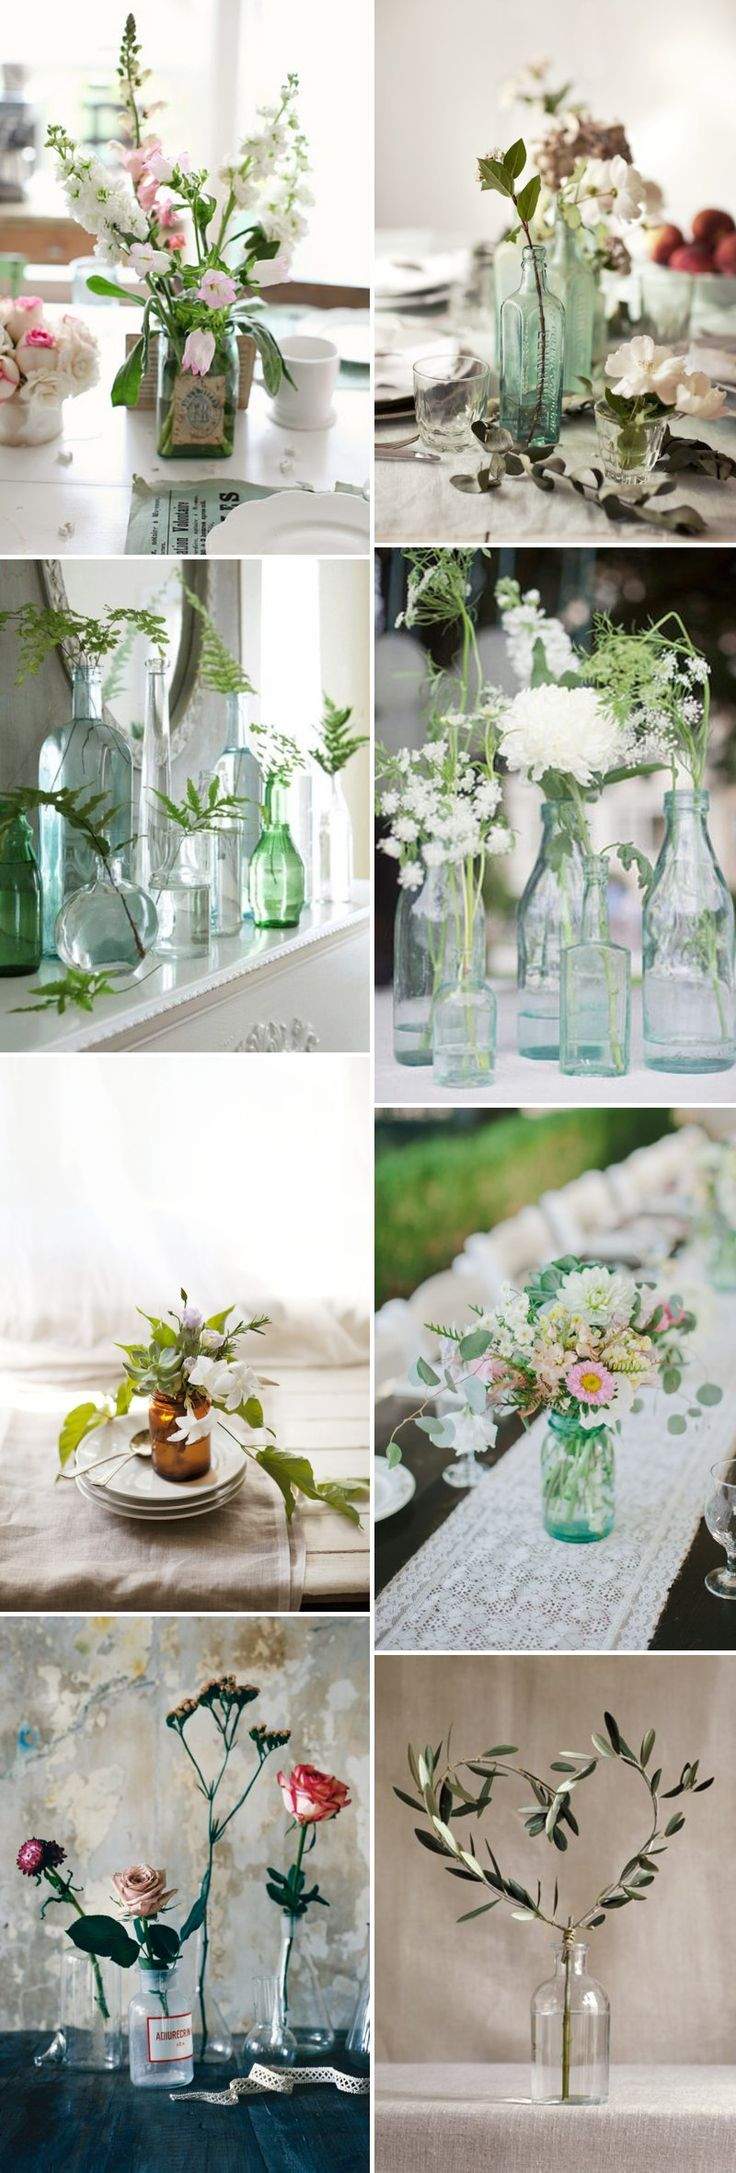 Wedding decor images zimbabwe   best Dickinson Wedding images on Pinterest  Baby sister Kid